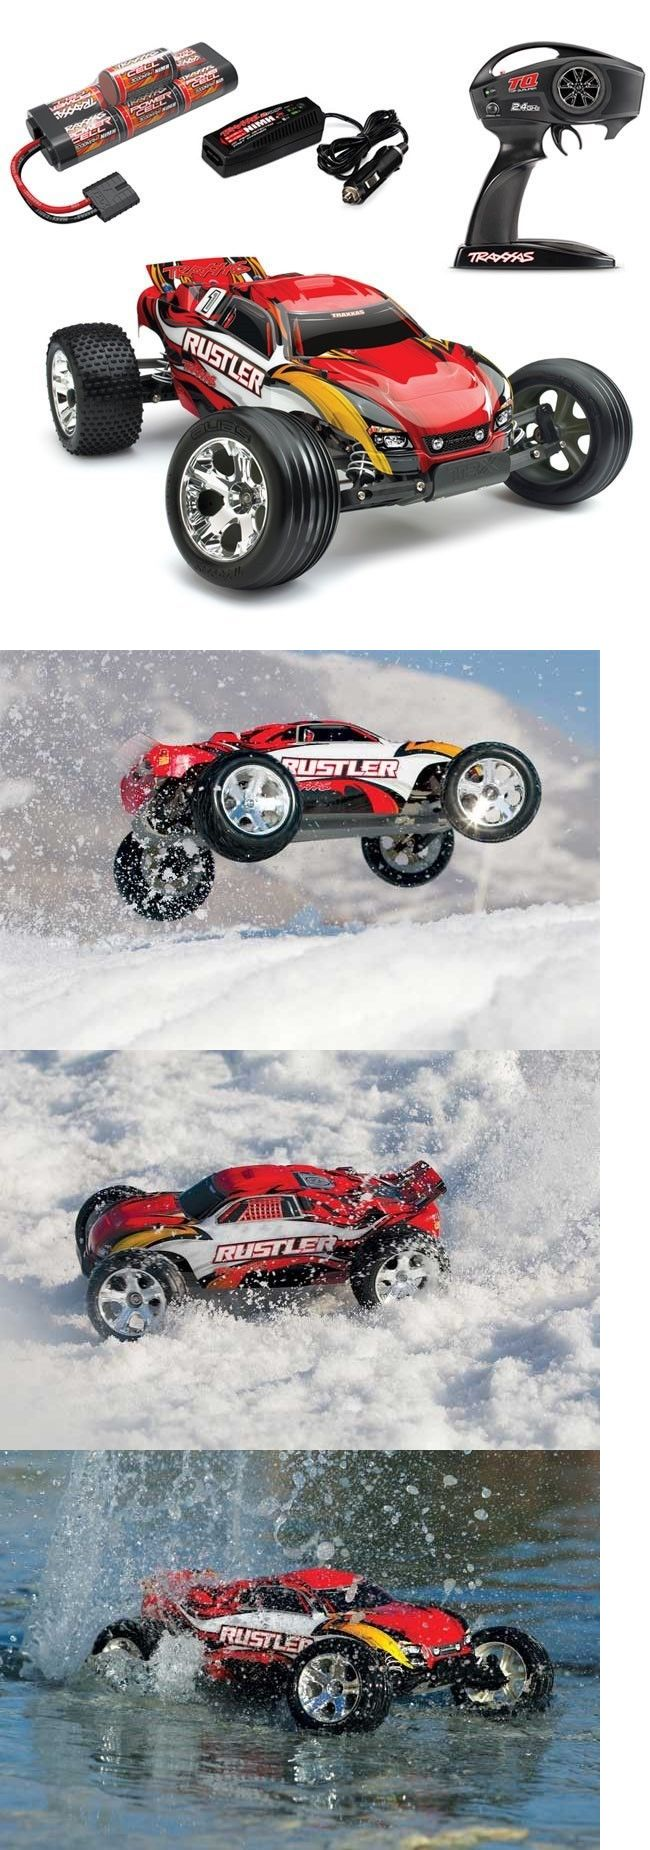 Cars Trucks and Motorcycles 182183: New Traxxas Rustler Xl-5 Rtr Rc Truck W Id Battery And Quick Charger Red 37054-1 -> BUY IT NOW ONLY: $189.95 on eBay!